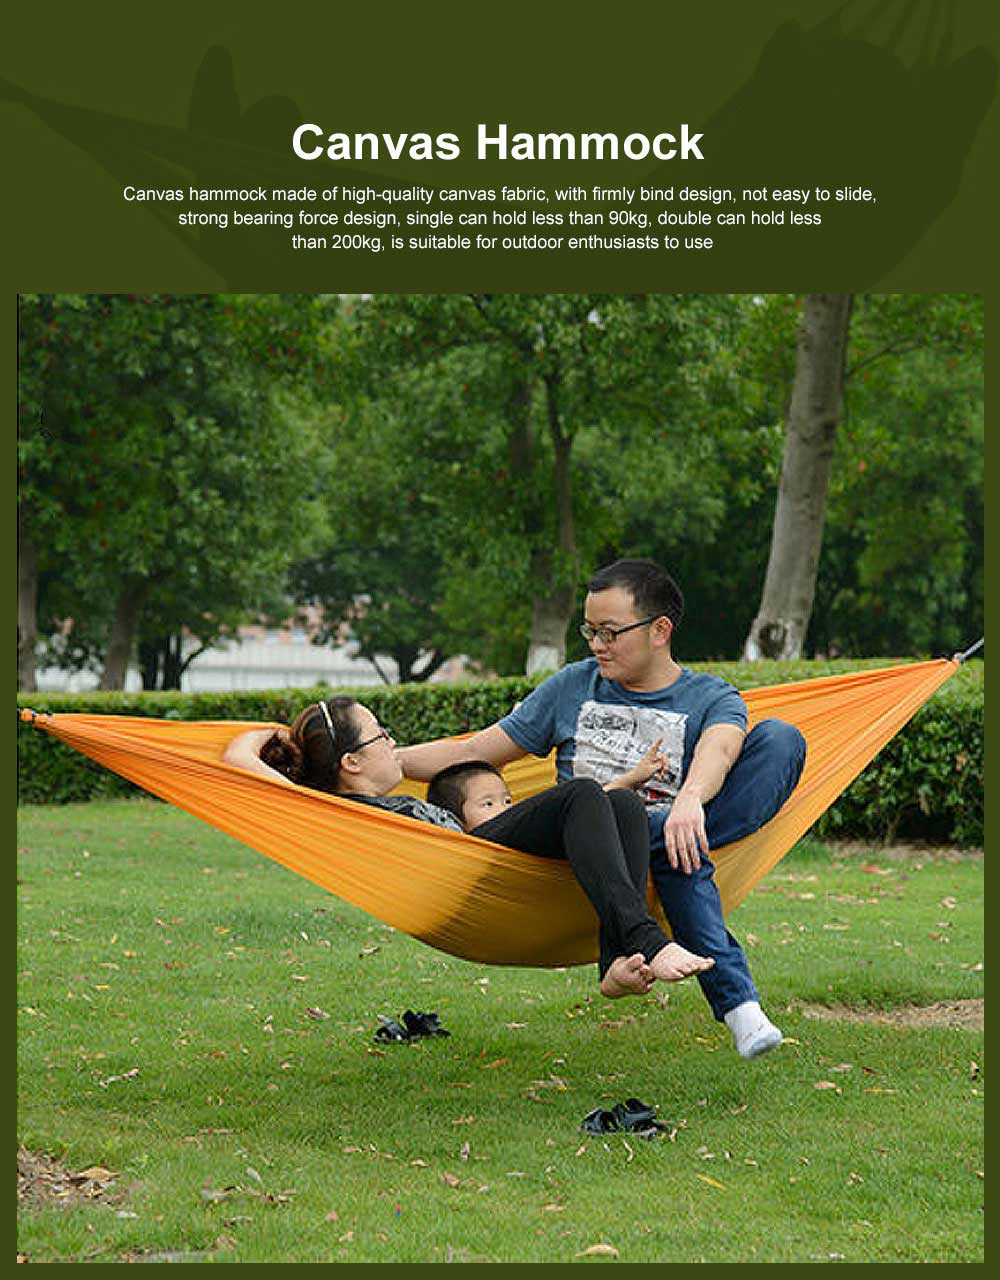 Canvas Hammock for Outdoor Enthusiasts, Strong Bearing Force Cot Bed, Firmly Bind Mesh Leisure Swing 0